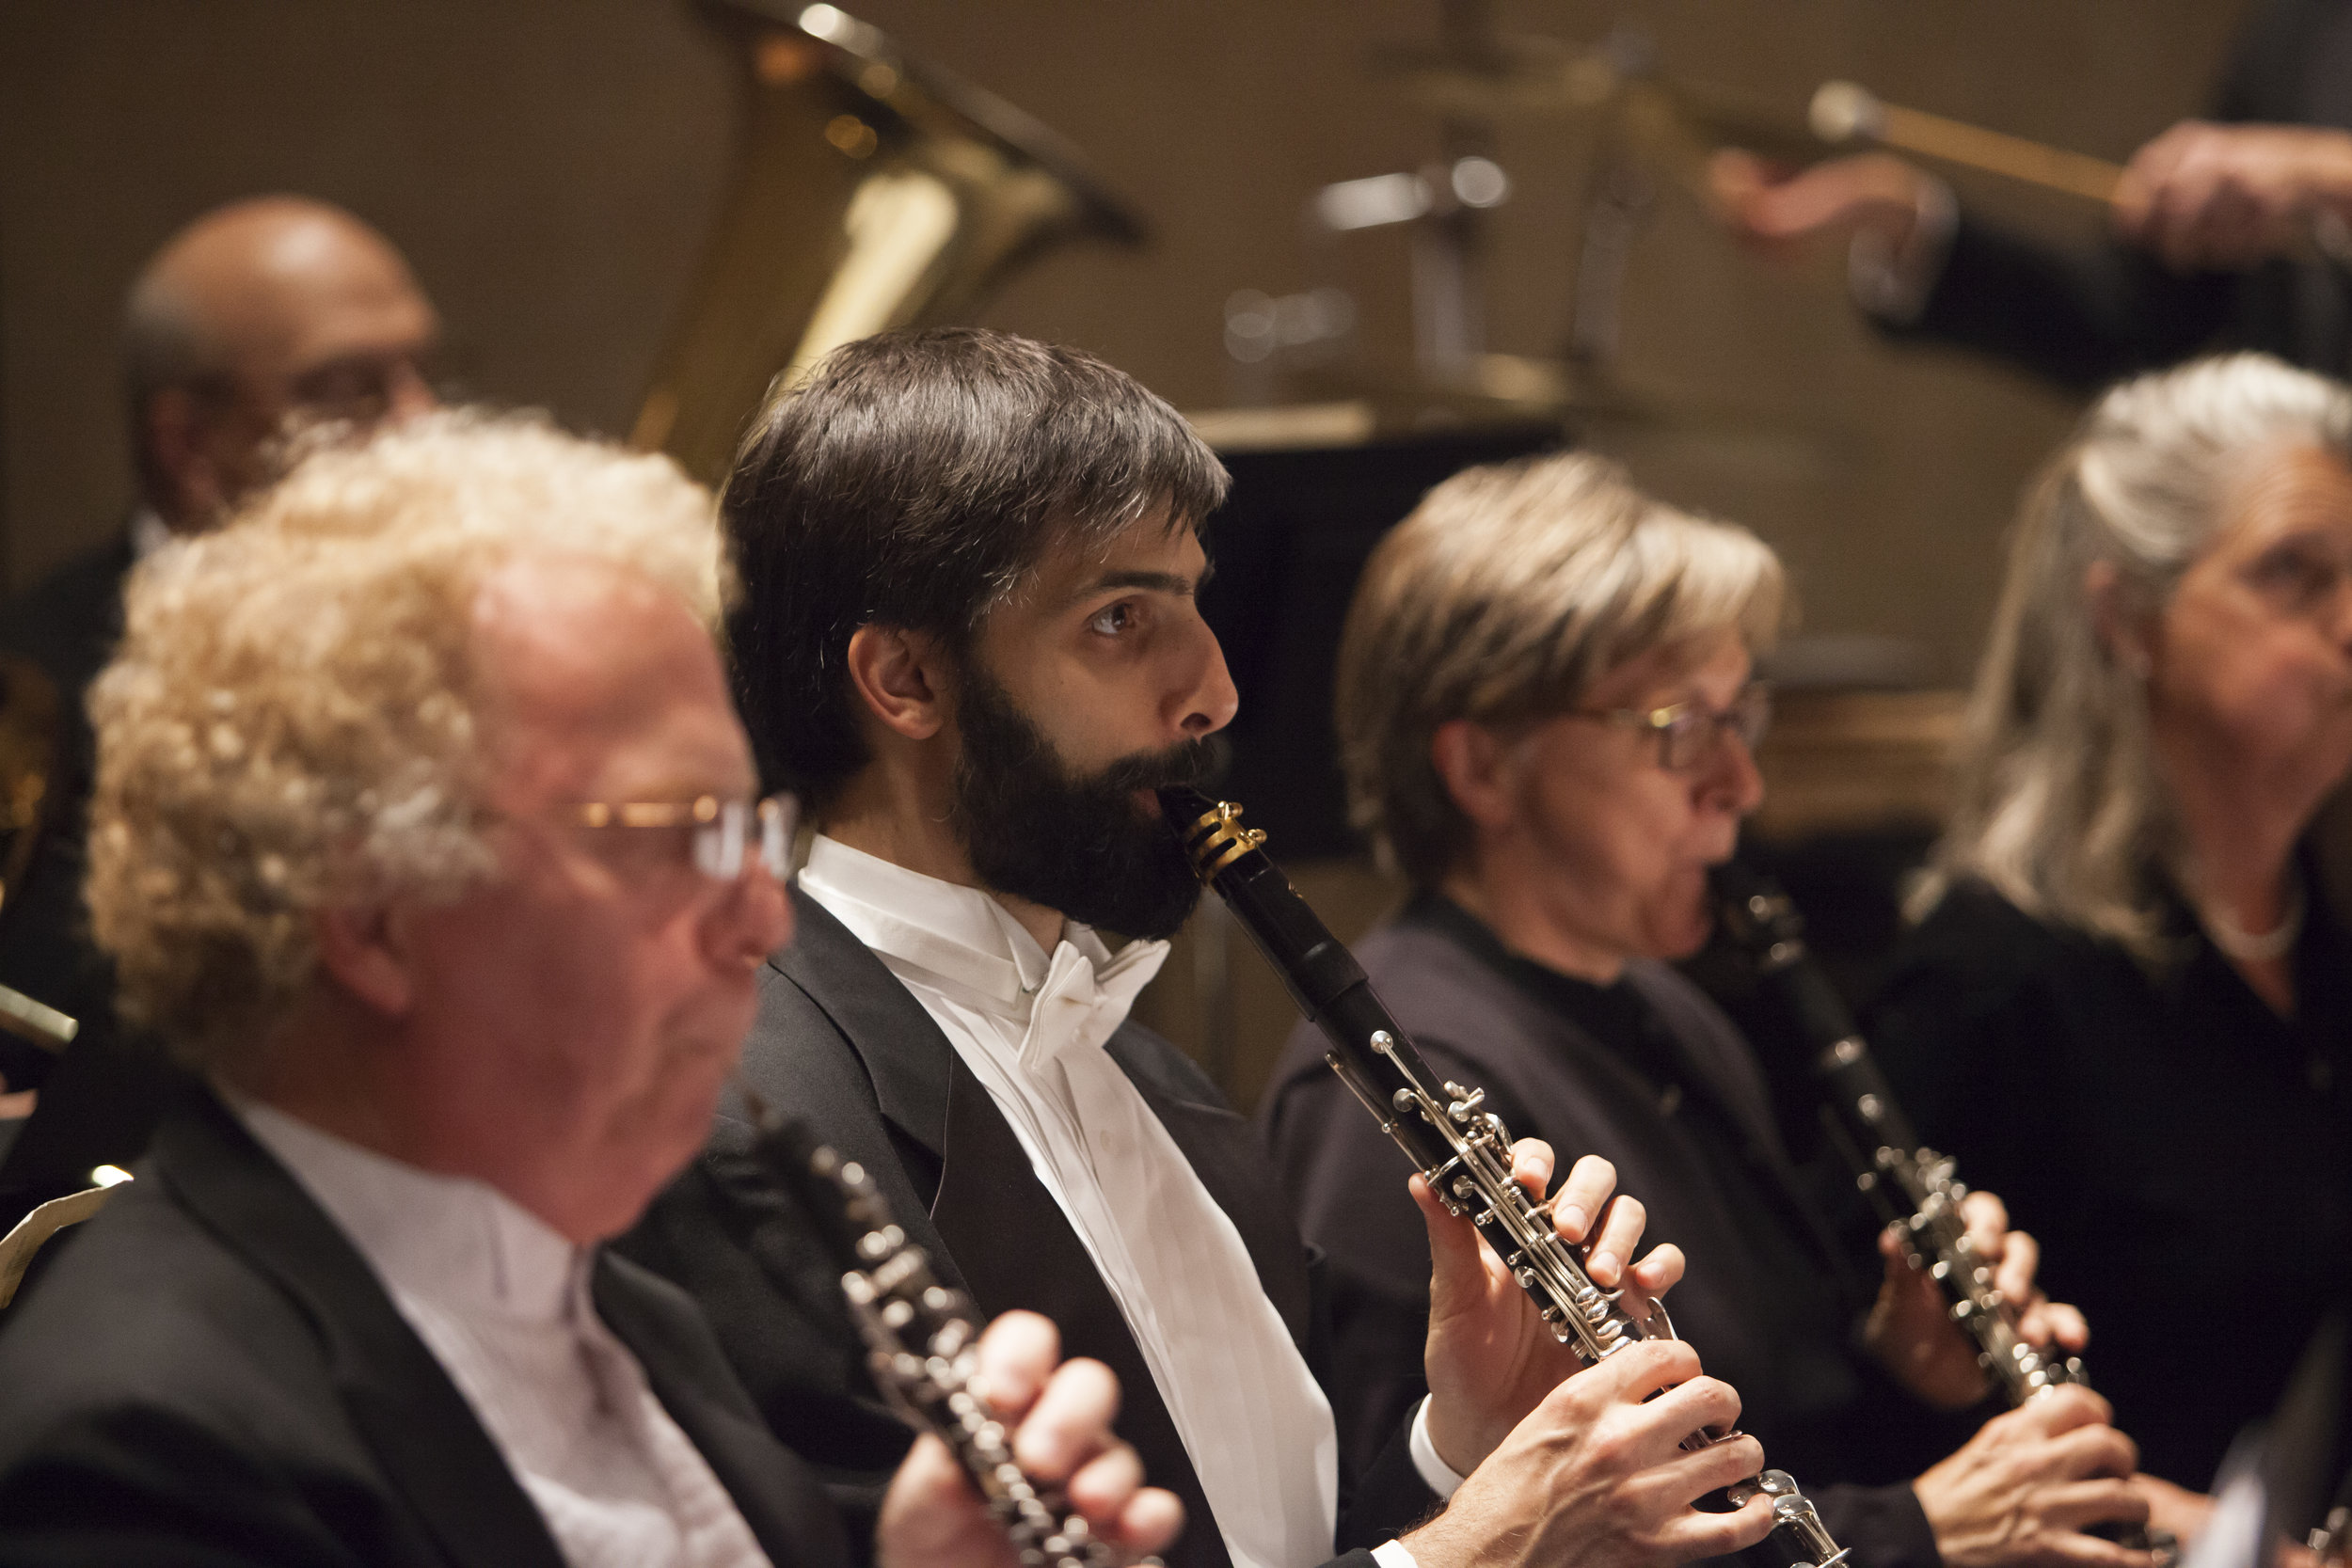 Only the best will do - The San Francisco Chamber Orchestra is a tightly-knit ensemble comprised of the very best Bay Area musicians. Let us share our passion and joy for performing great classical music with you.Meet the SFCO